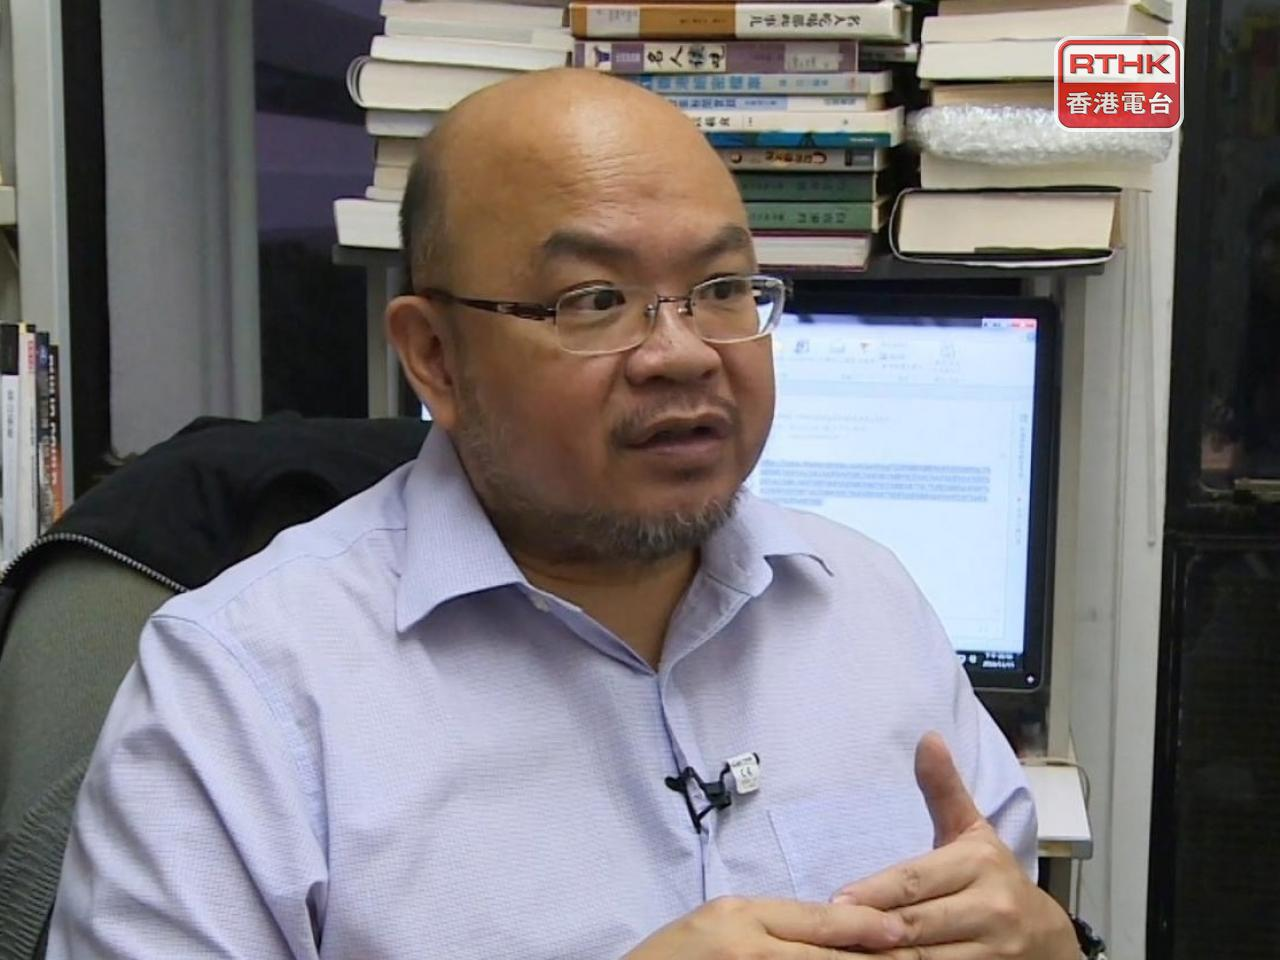 Political academic Ivan Choy expressed concern that the government's action against the PTU might not be an isolated move. File photo: RTHK